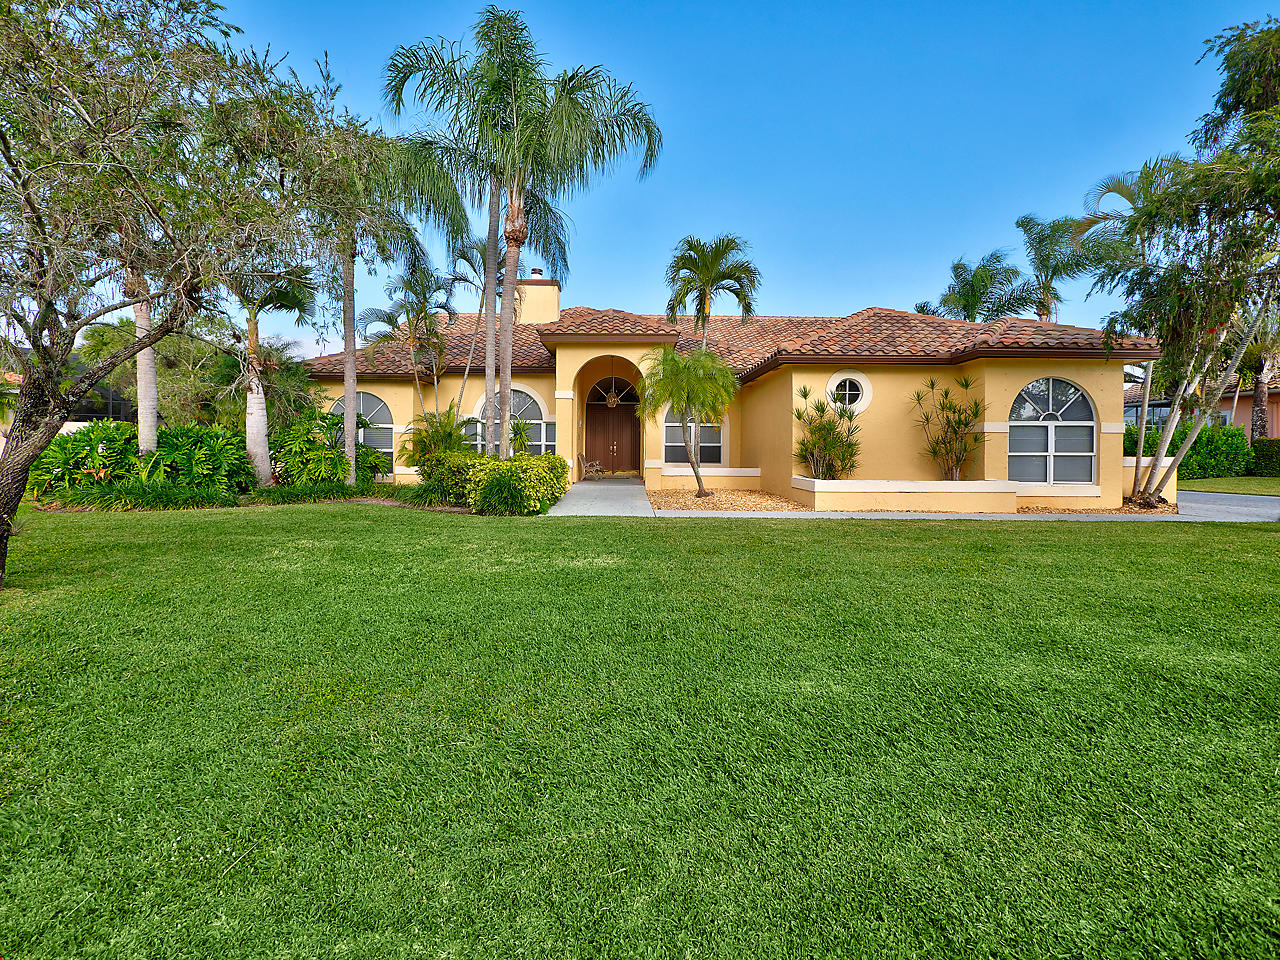 2253 Greenview Cove Drive, Wellington, Florida 33414, 4 Bedrooms Bedrooms, ,3 BathroomsBathrooms,Single Family,For Sale,Polo West Estates,Greenview Cove,1,RX-10495998